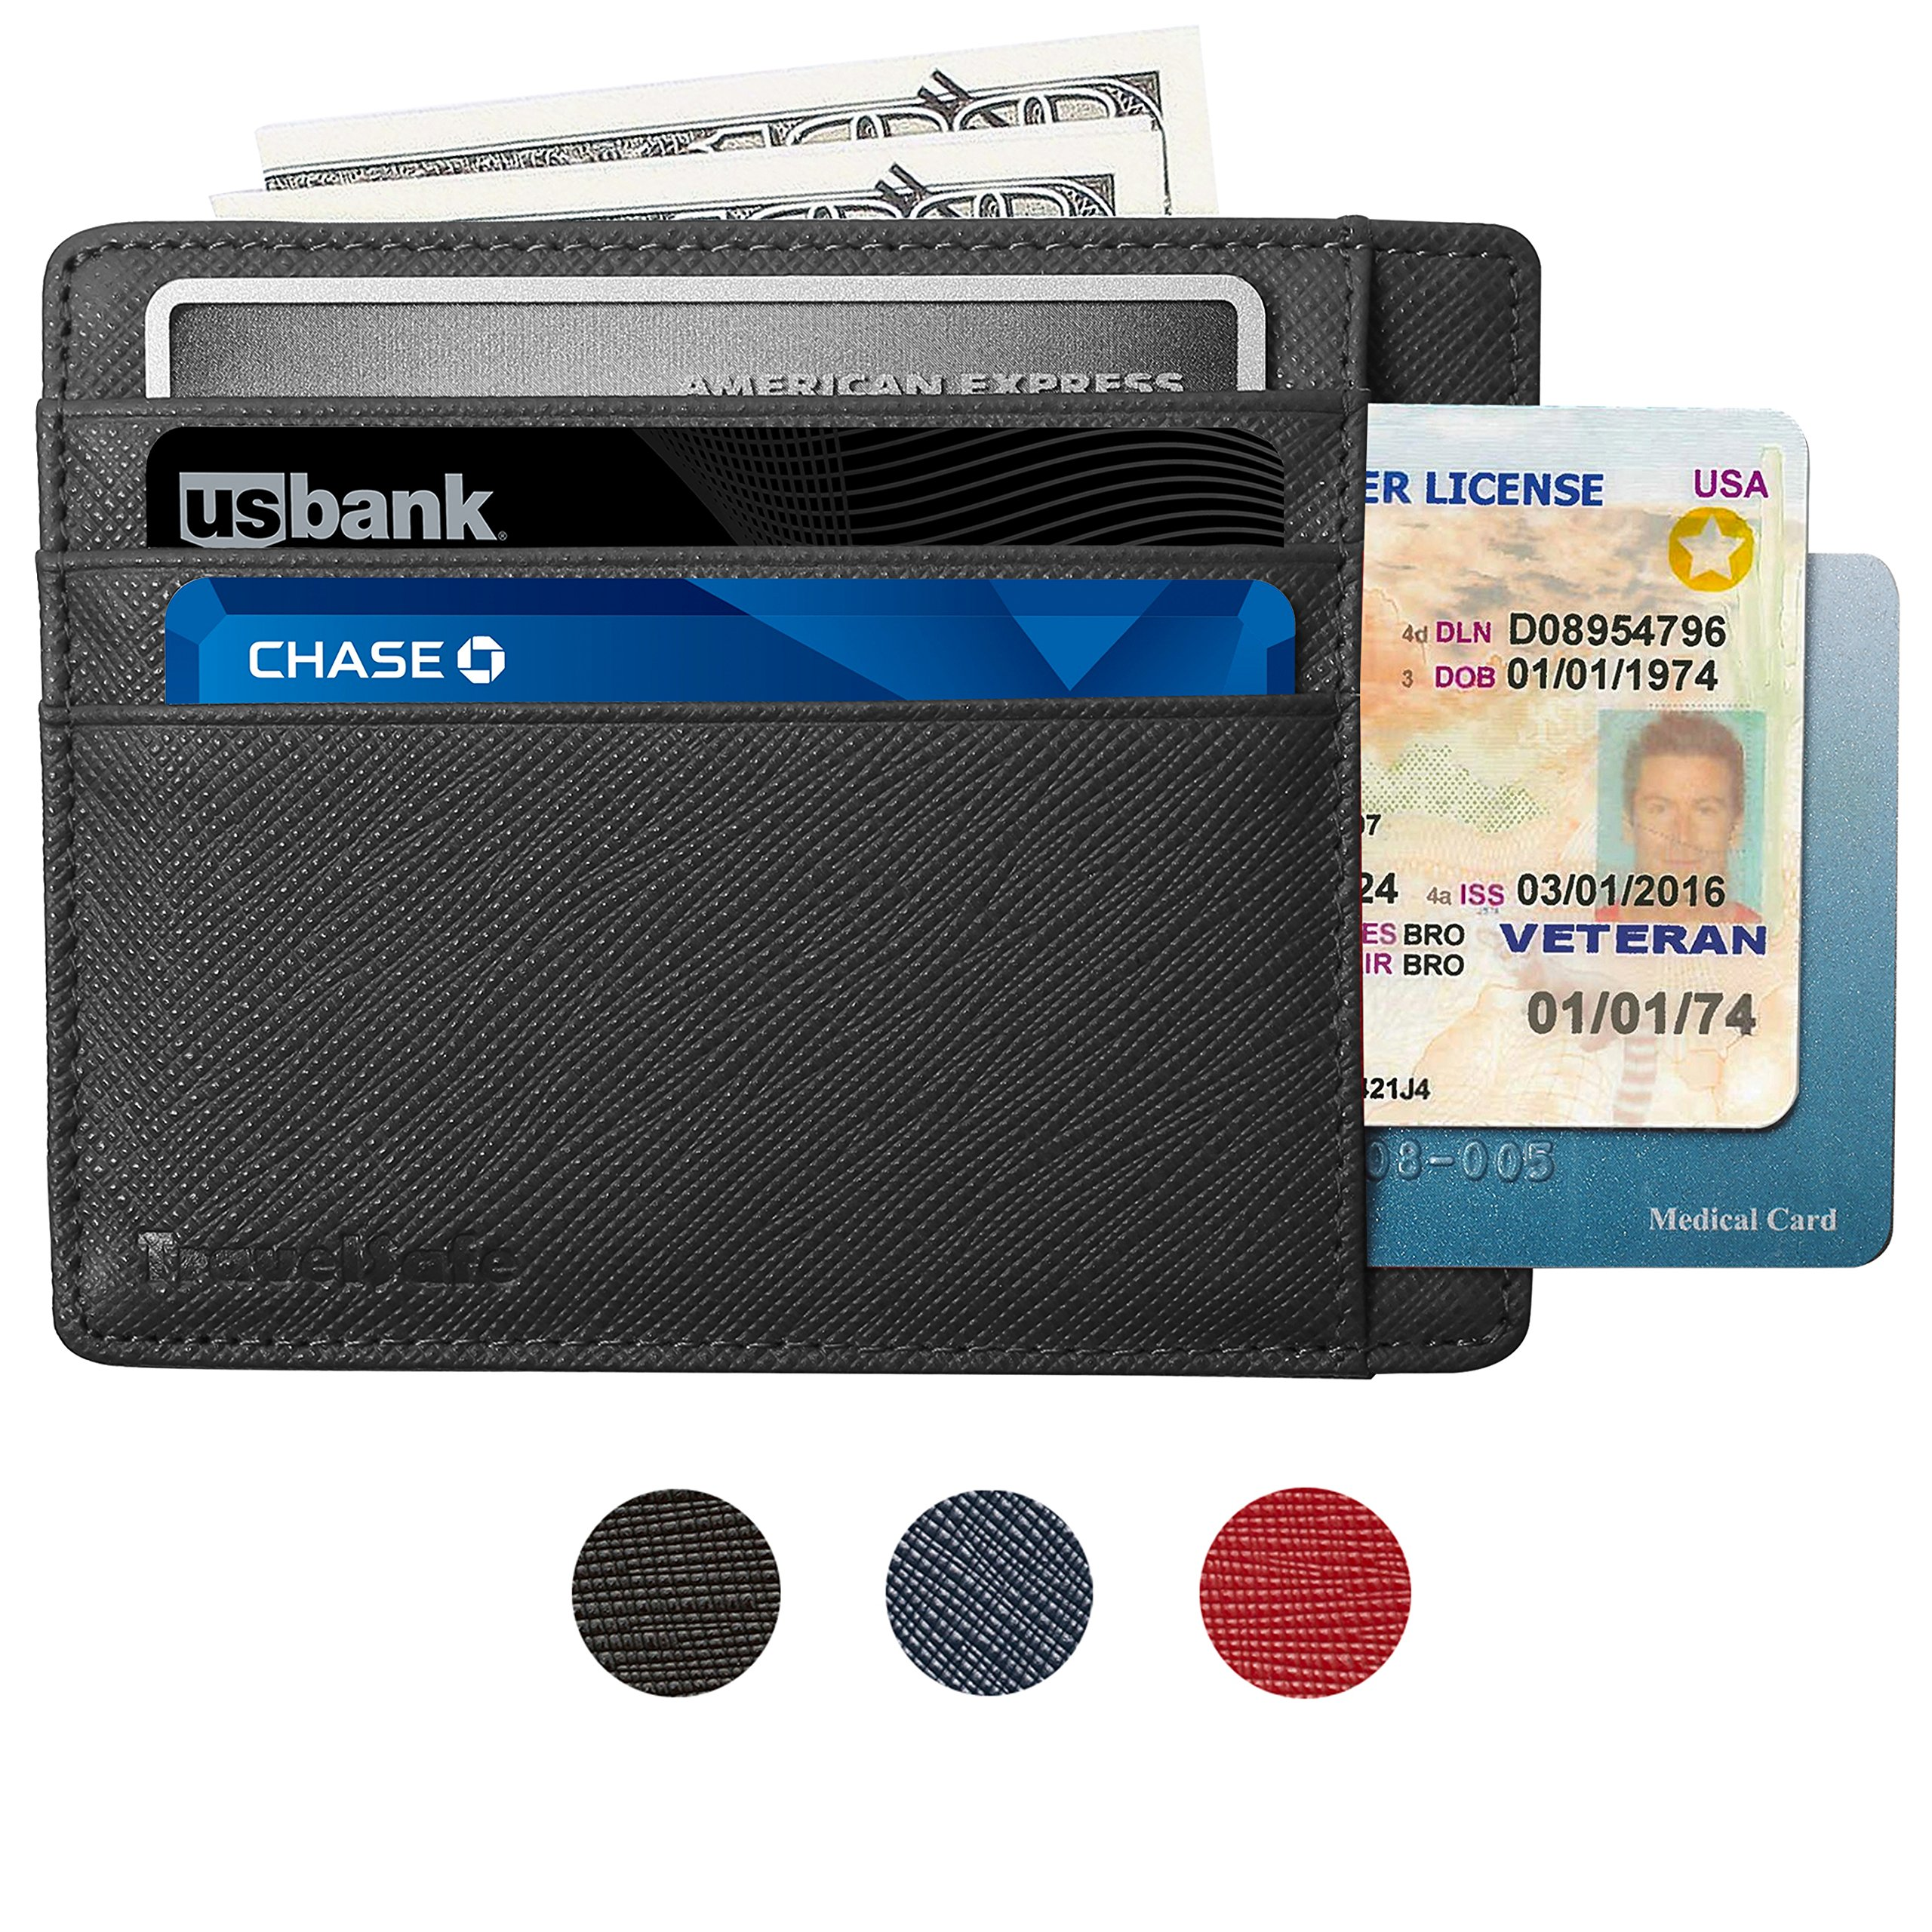 RFID Blocking Credit Card Holder Genuine Leather - Slim & Thin 8 Card Slots RFID Credit Card Holder for Women and Men - Minimalist Front Pocket Wallet Design Protects All Credit, ID Cards (Black)